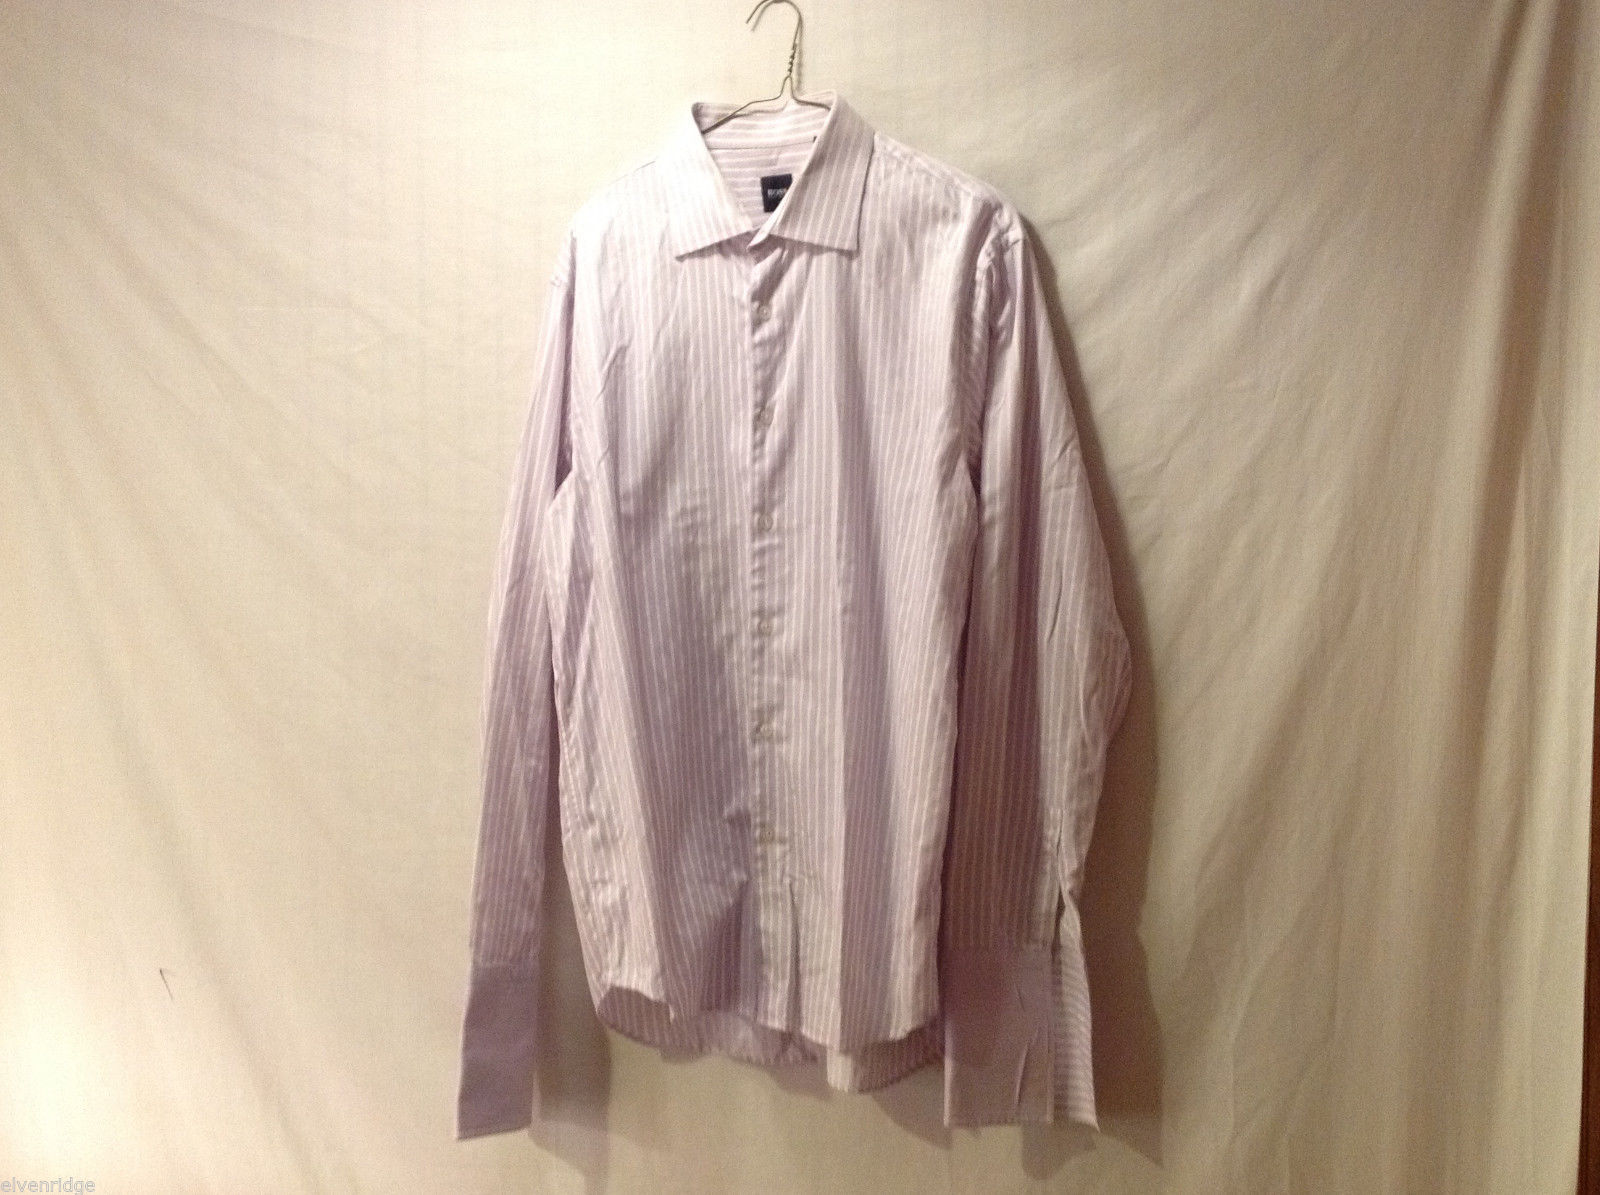 BOSS Men's Size XL Button-Down Dress Shirt w/ French Cuffs Pink & White Striped